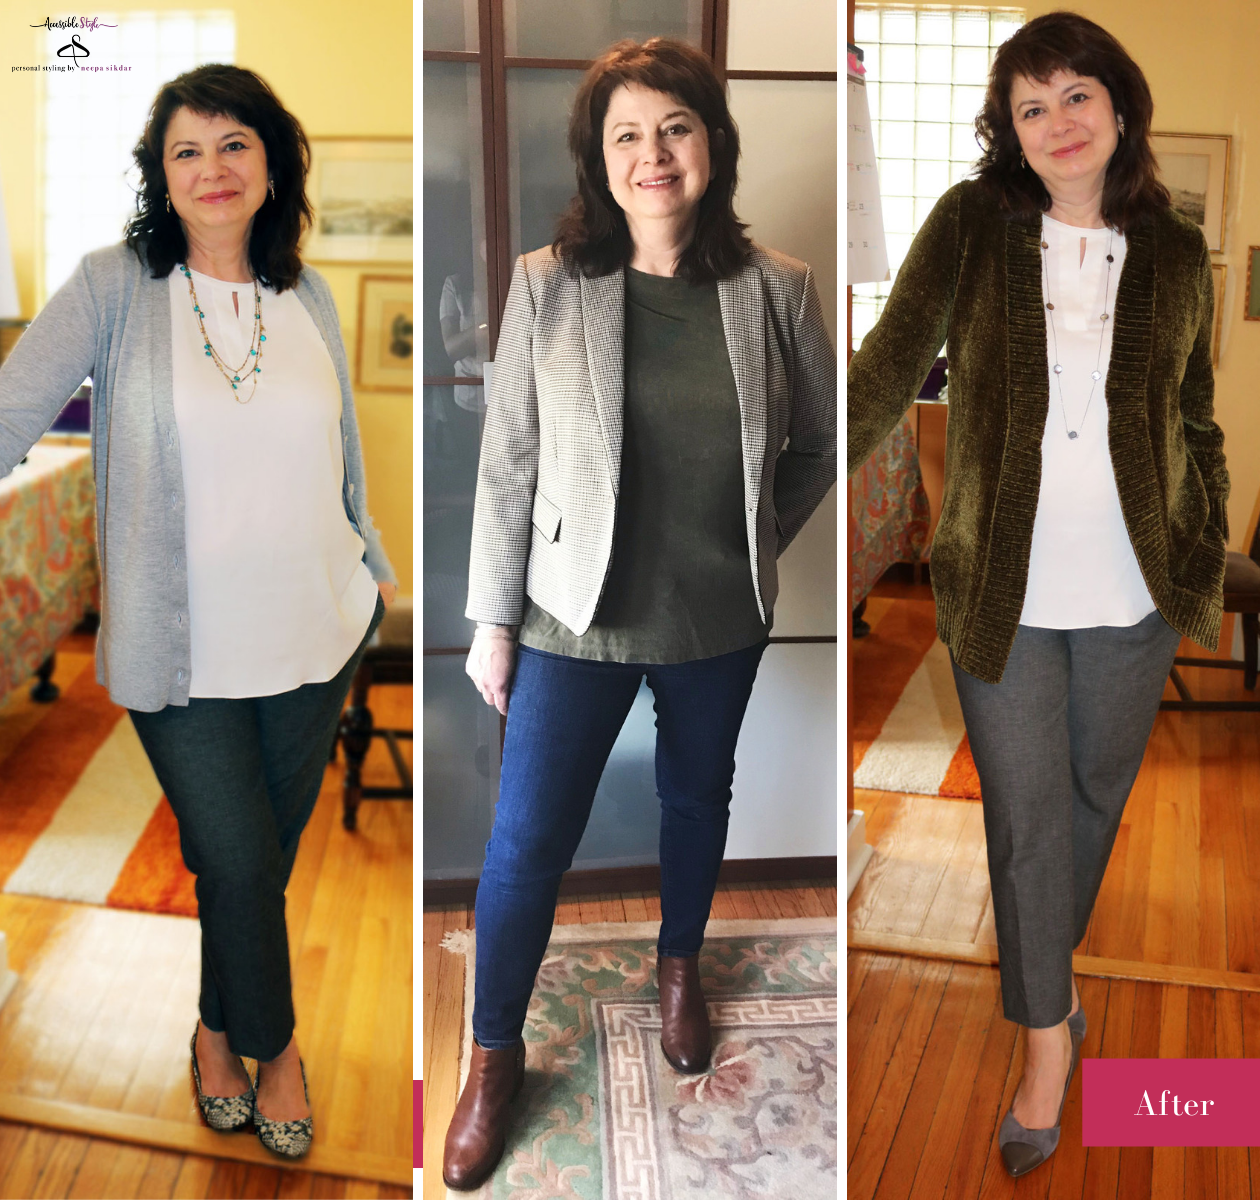 New Jersey Accessible Style Personal Stylist Client of Neepa Sikdar, Her story - everyday women with accessible style - Karen after